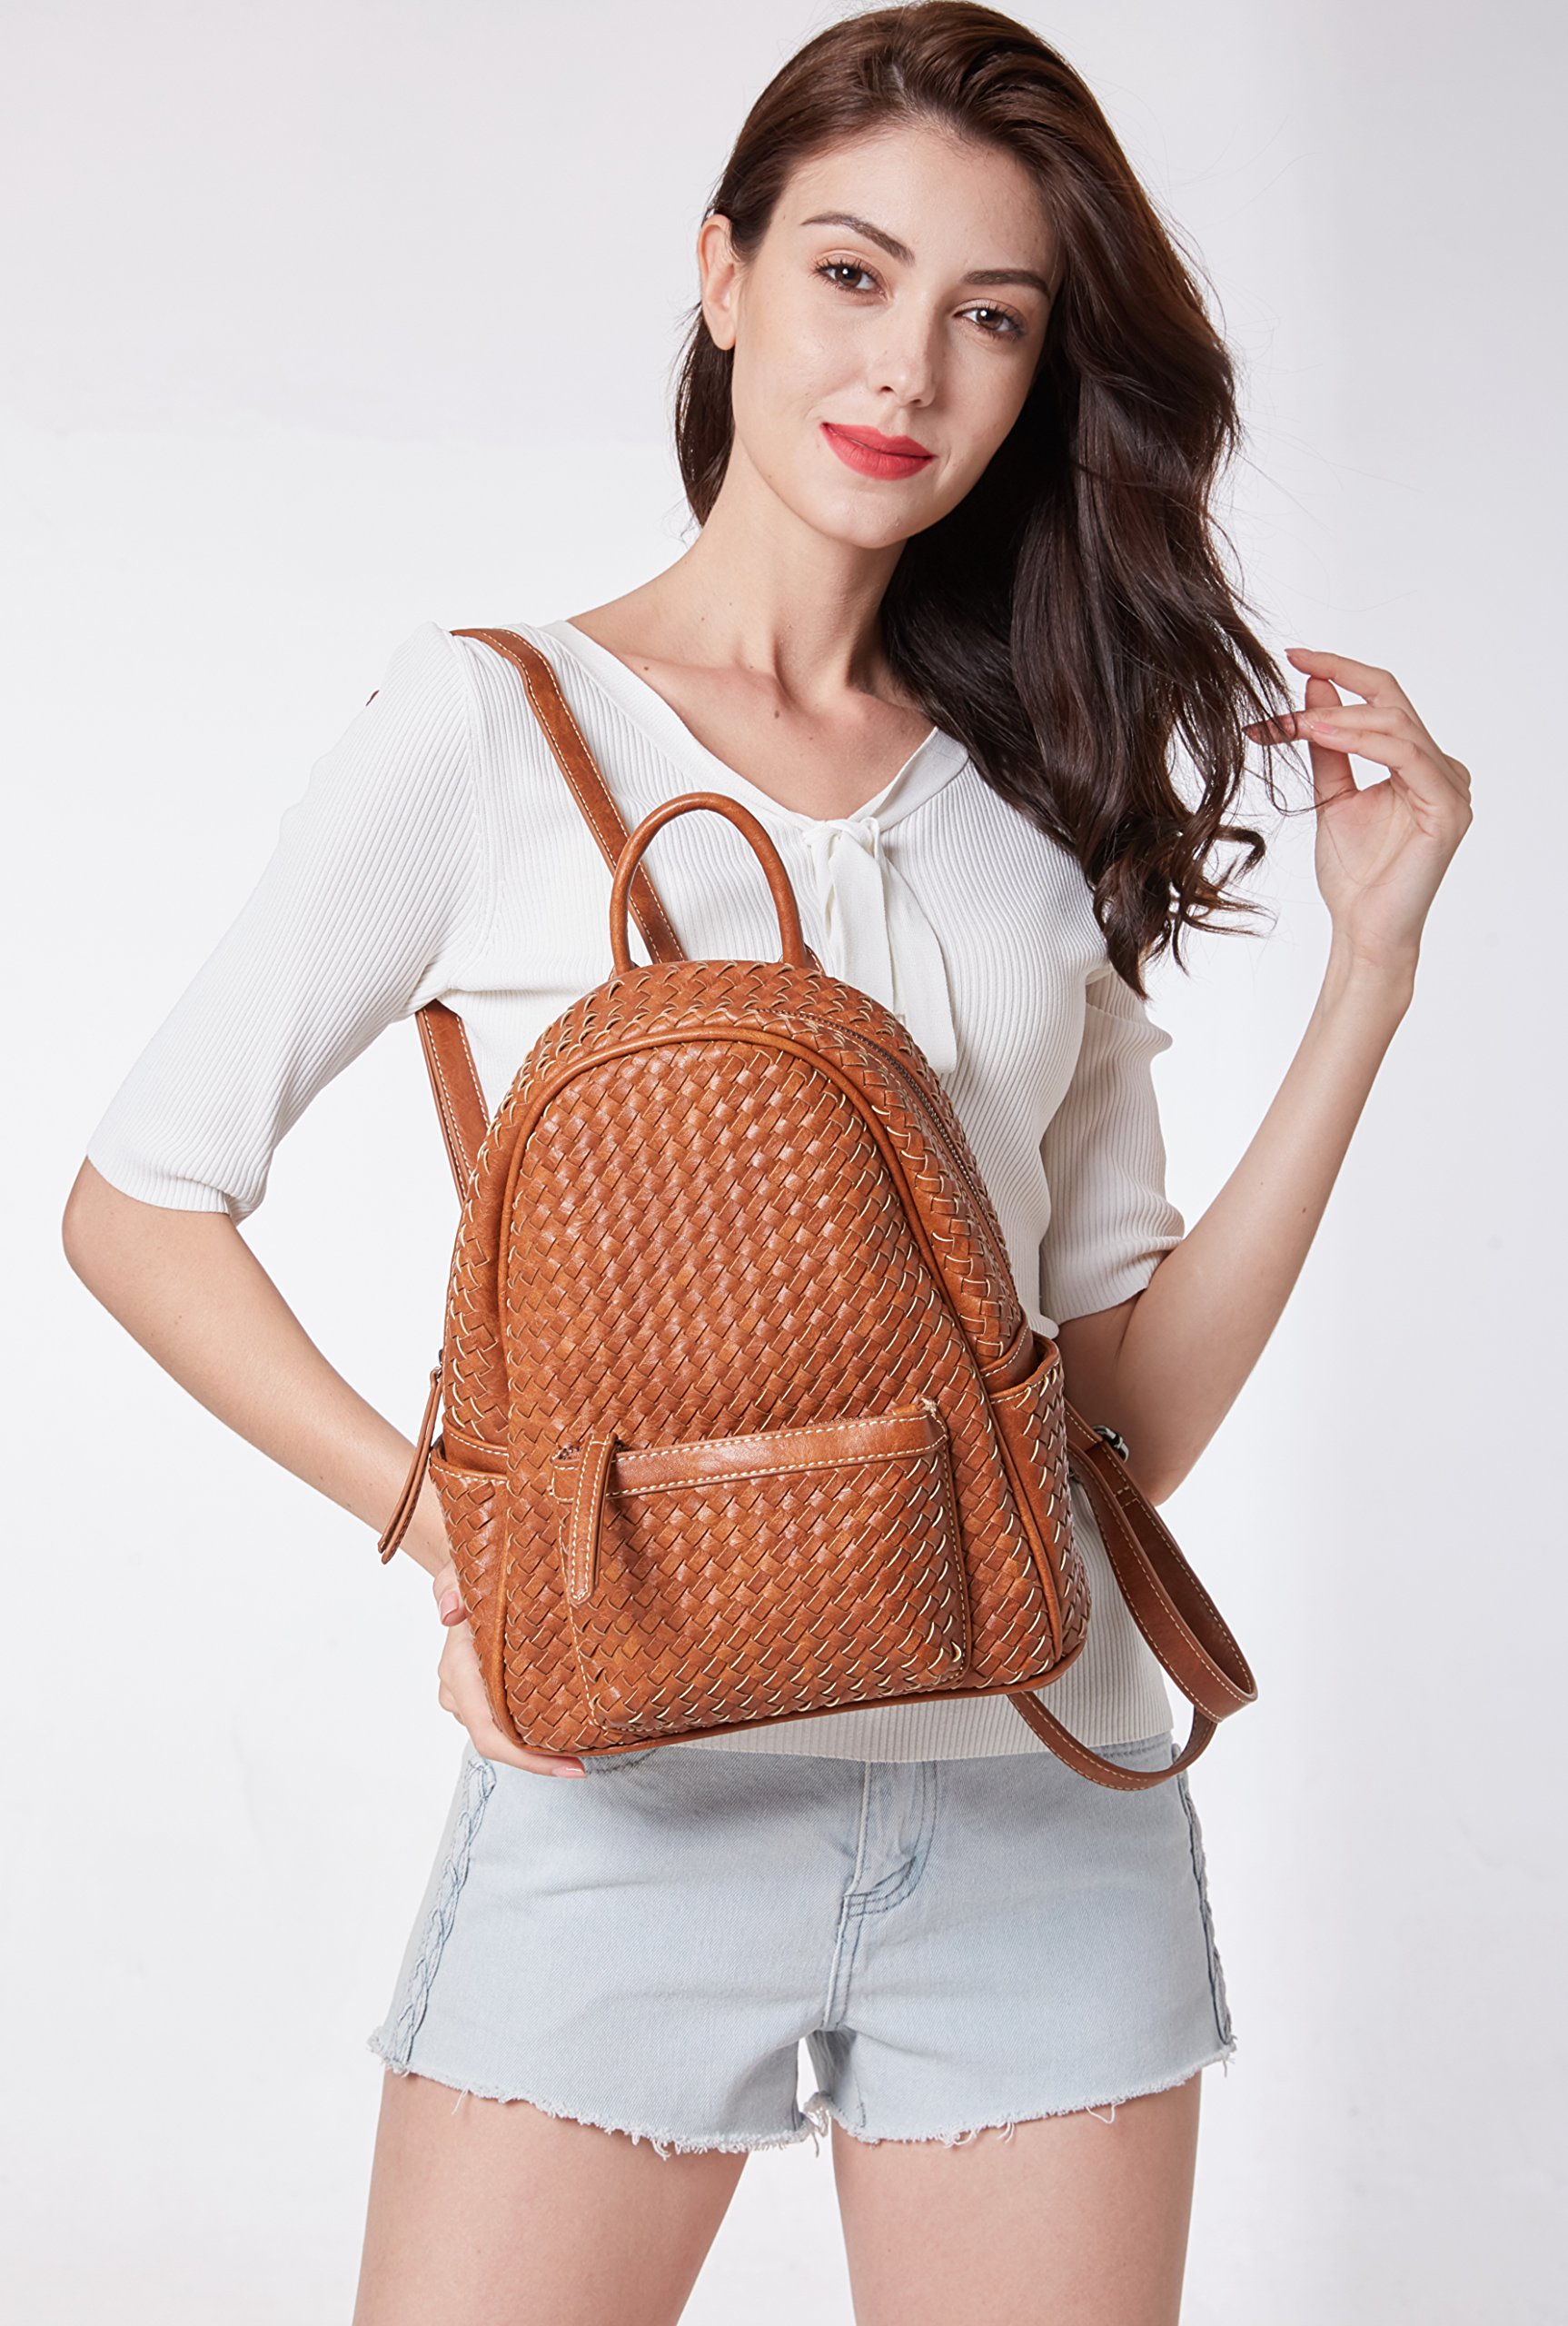 Small Women Backpack Purse for Women ladies Fashion Stylish Casual Shoulder Bags … (Tan) by Shomico (Image #6)